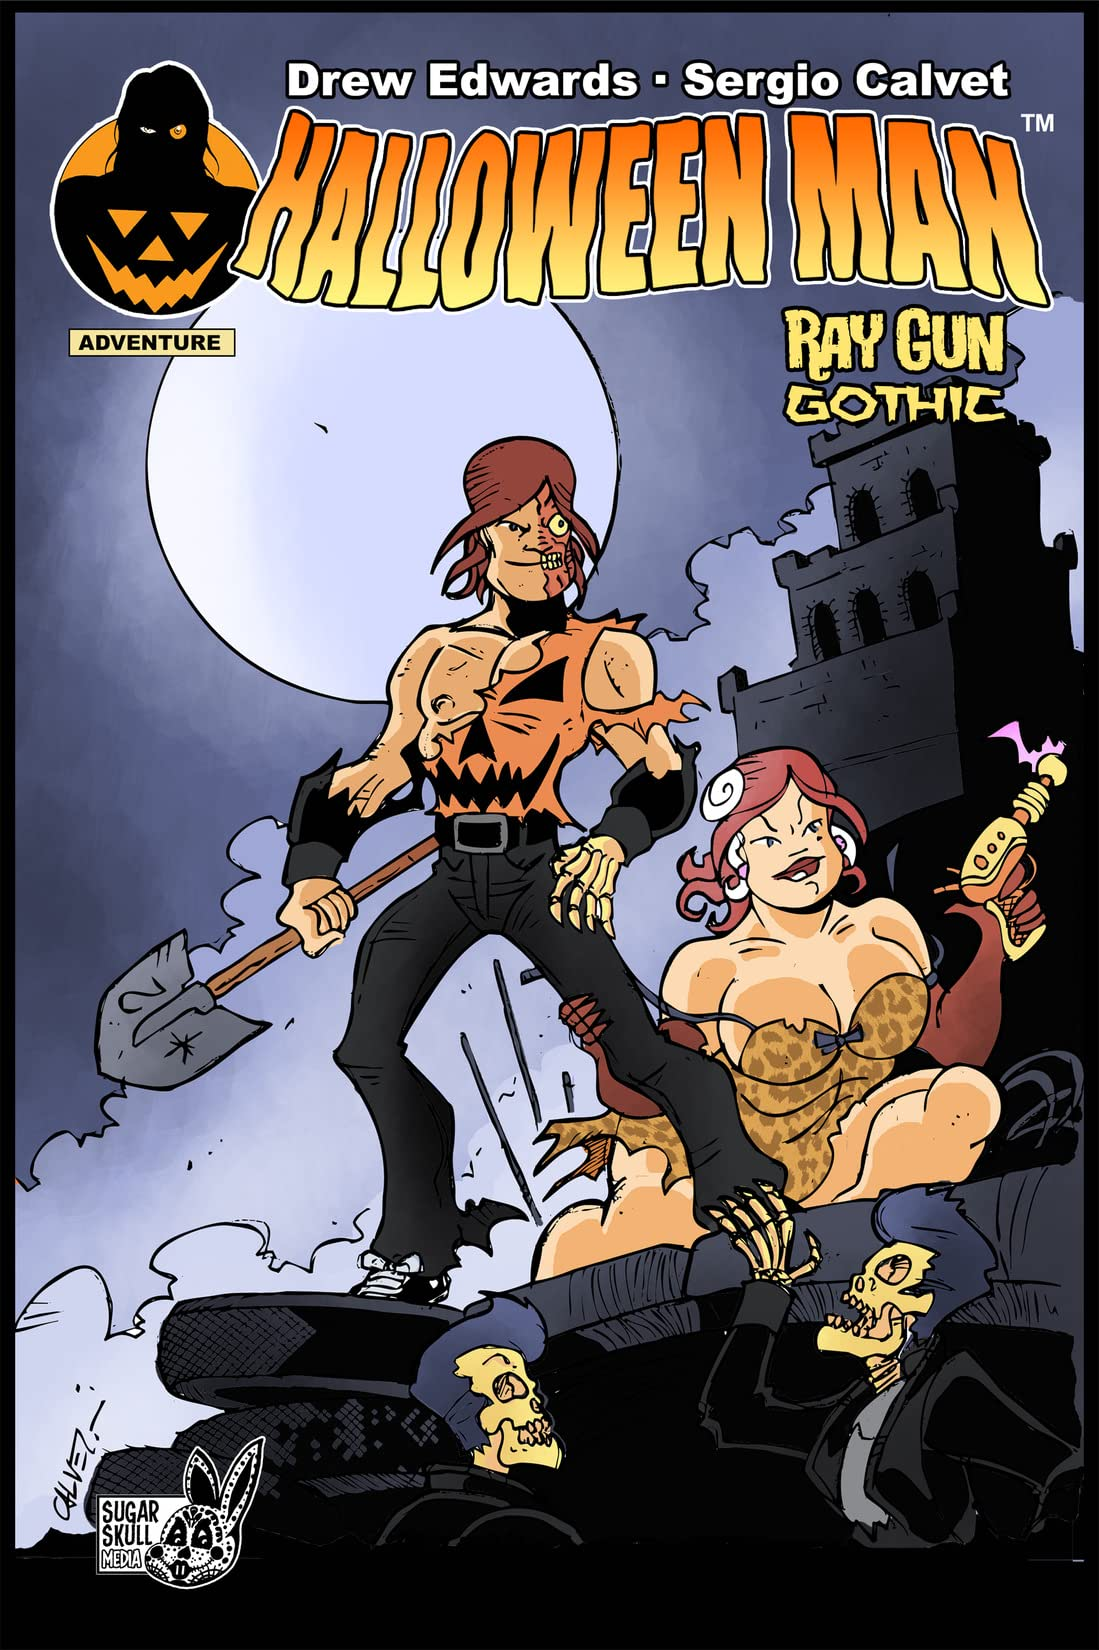 Halloween Man Vol. 1: Ray Gun Gothic